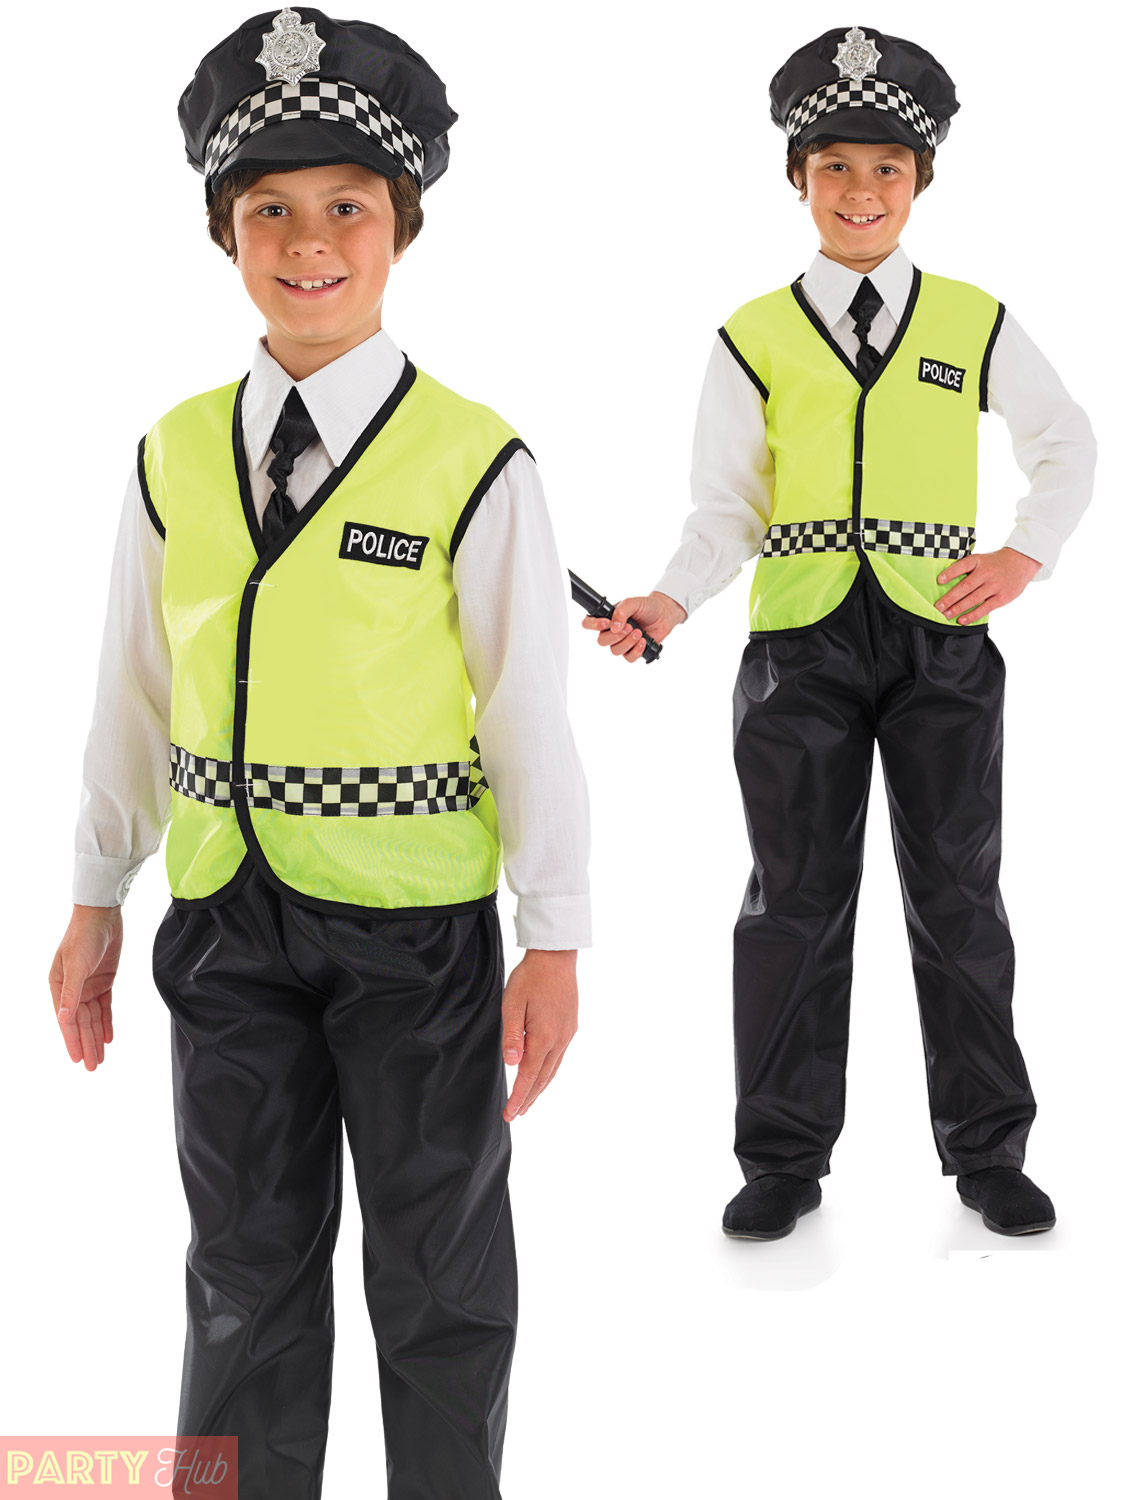 Childs policeman costume hat boys police fancy dress kids cop uniform outfit ebay - Police officer child costume ...